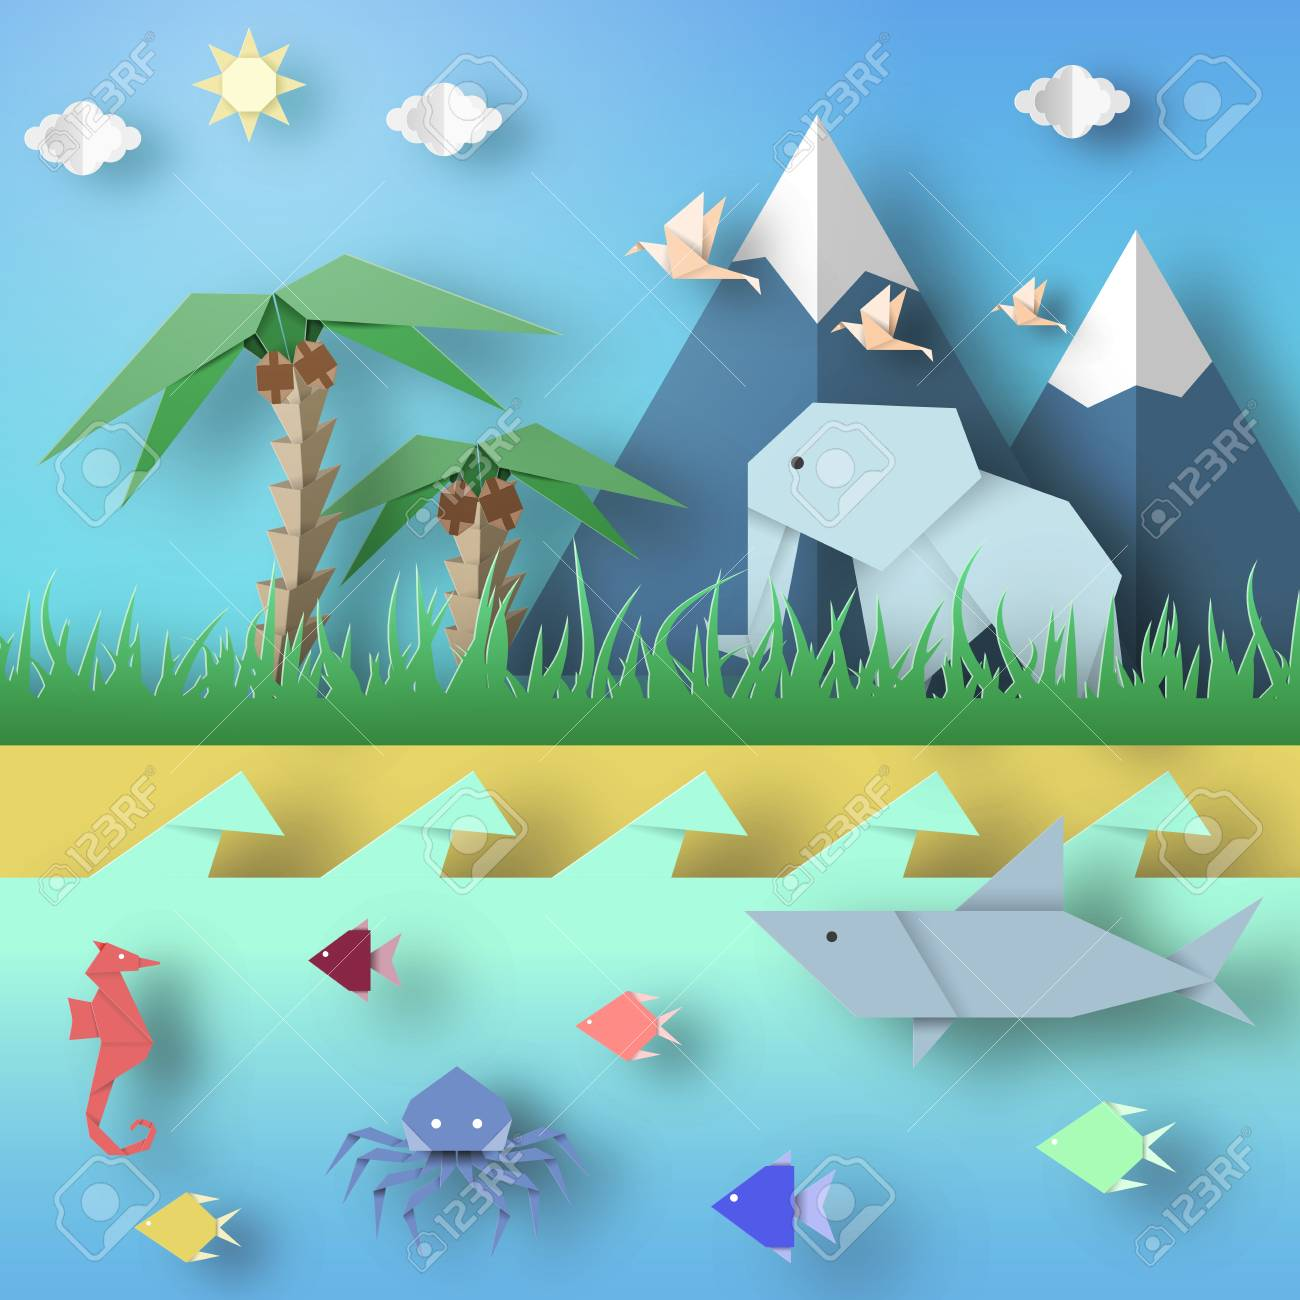 Paper Origami Abstract Concept Applique Scene With Cut Elephants Birds Underwater Life